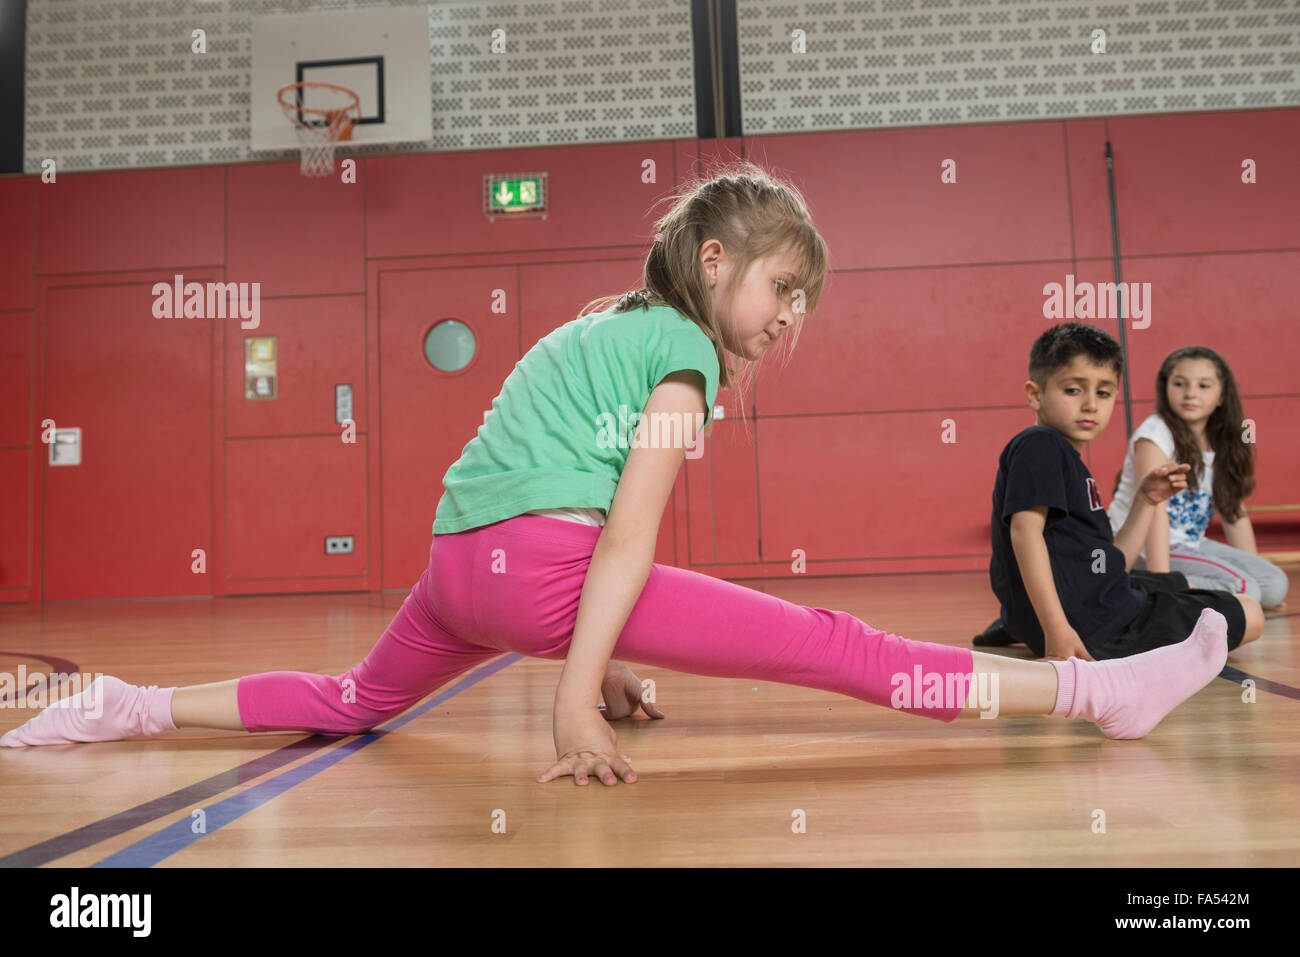 Girl amazed others by splitting her legs in sports hall, Munich, Bavaria, Germany - Stock Image